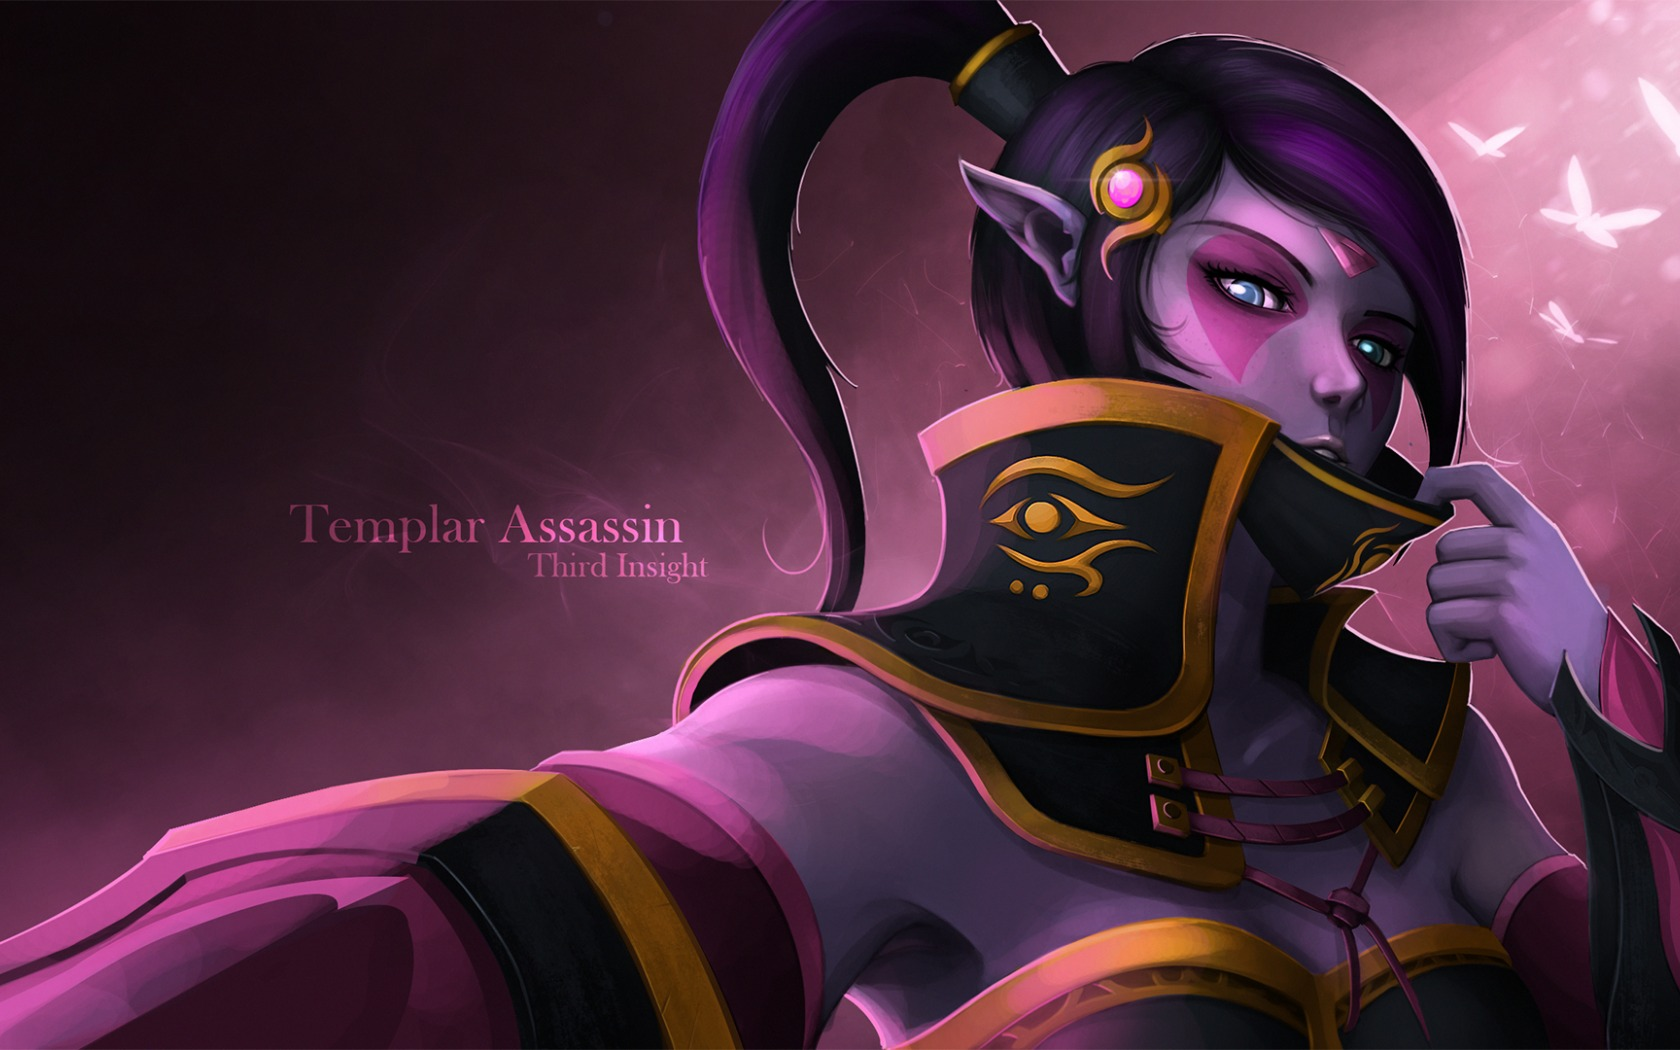 Templar Assassin wallpapers free | Wallpapers Dota 2 ...